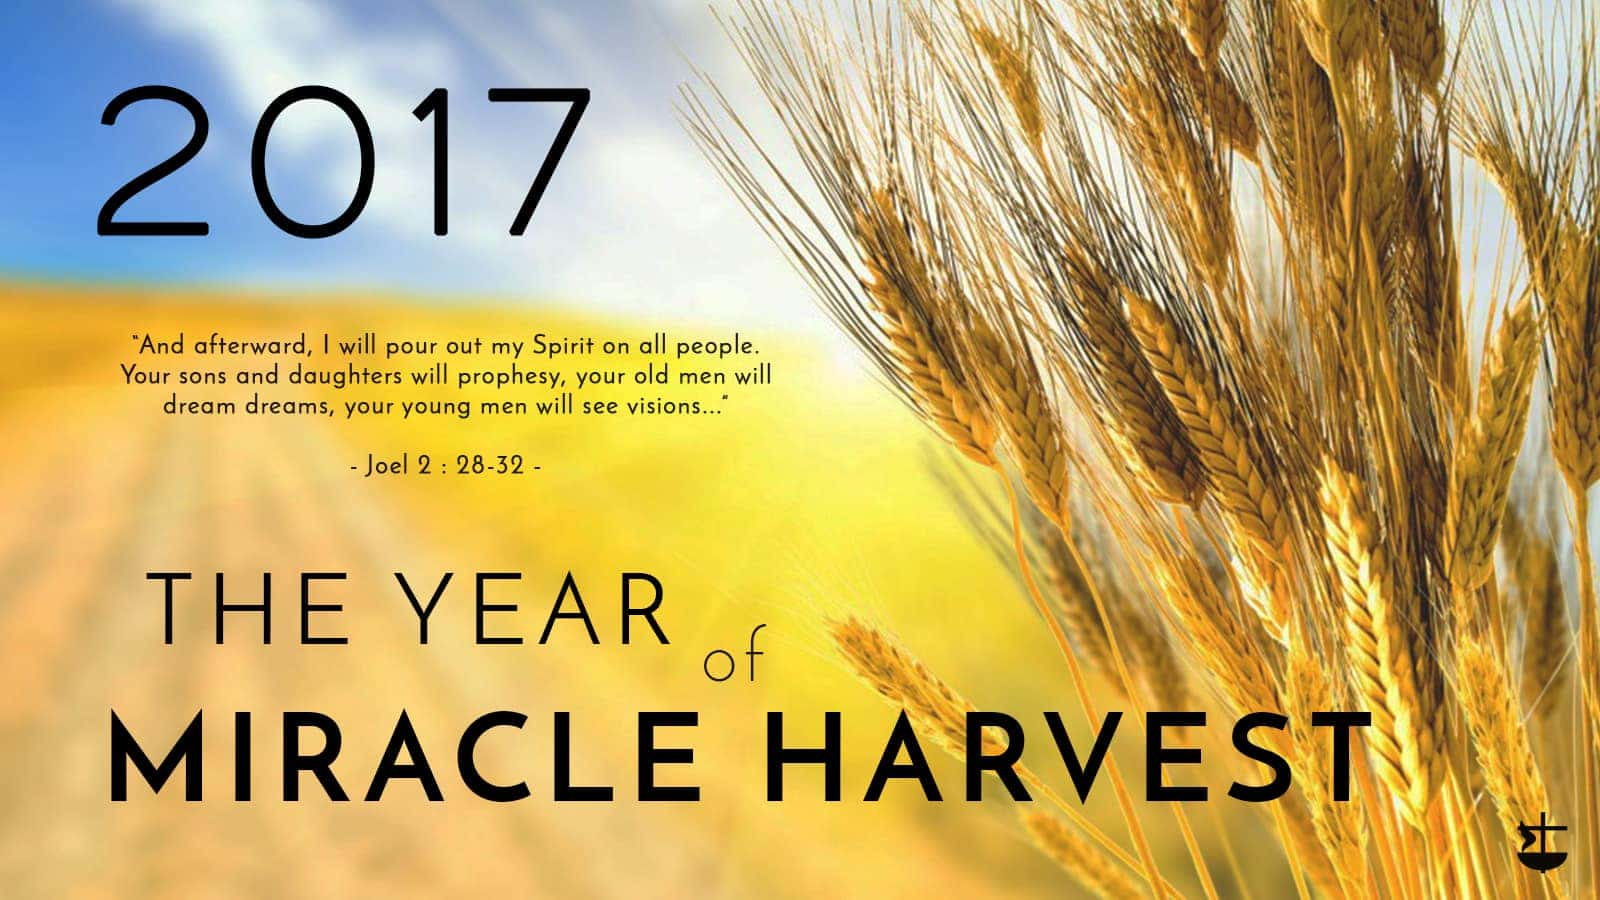 The year of Miracle Harvest